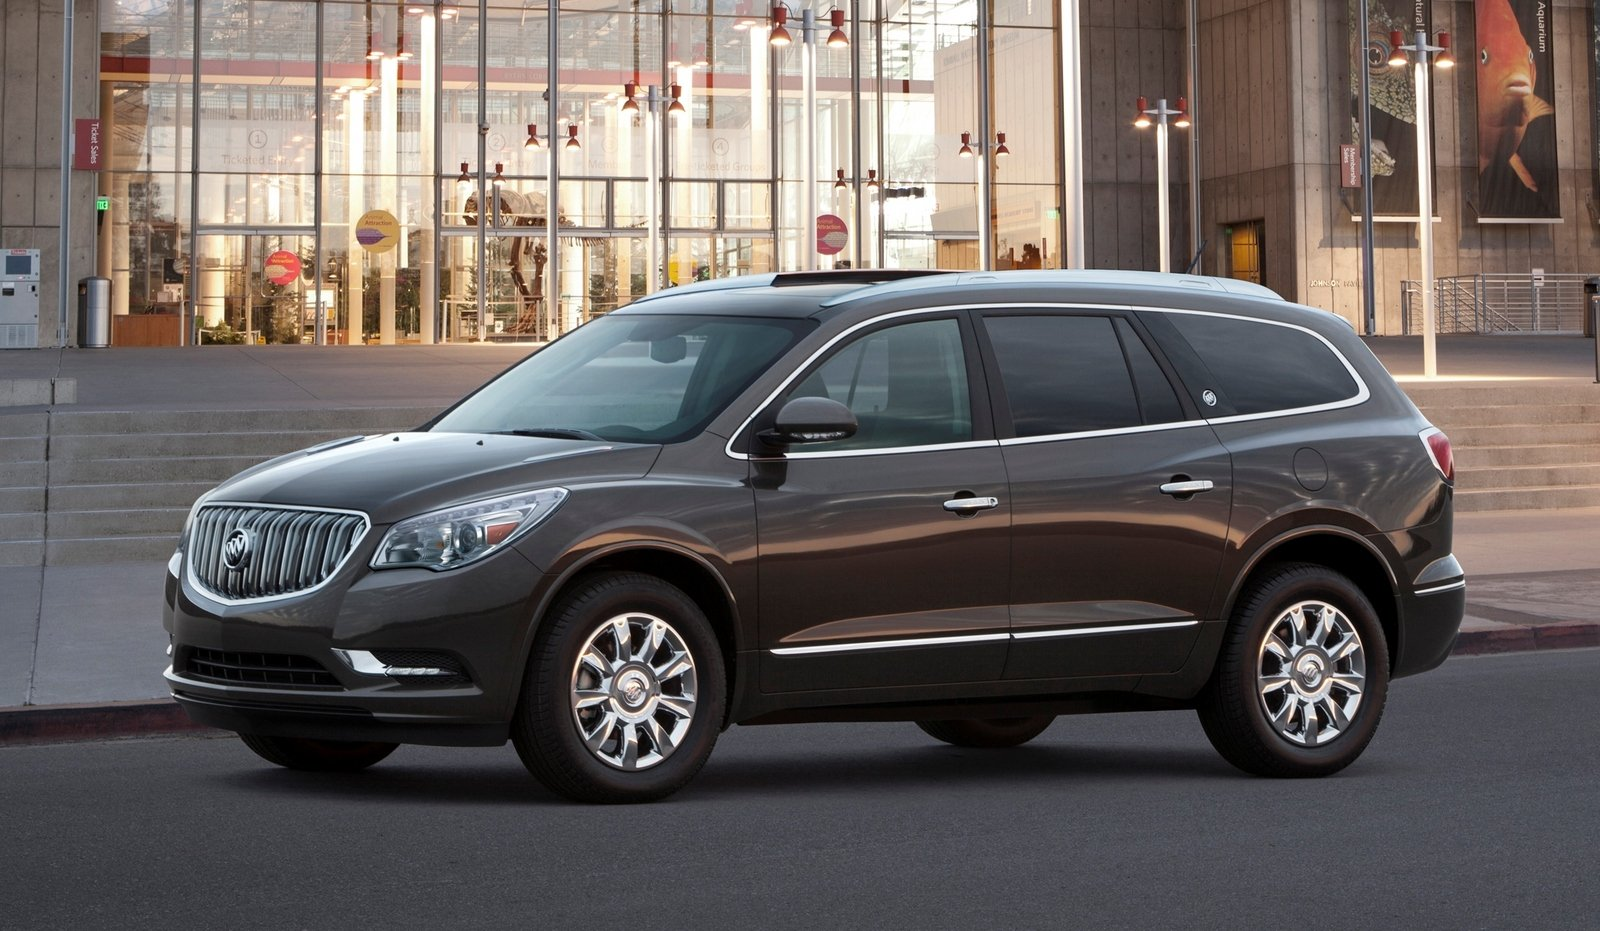 2014 buick enclave picture 515007 car review top speed. Black Bedroom Furniture Sets. Home Design Ideas